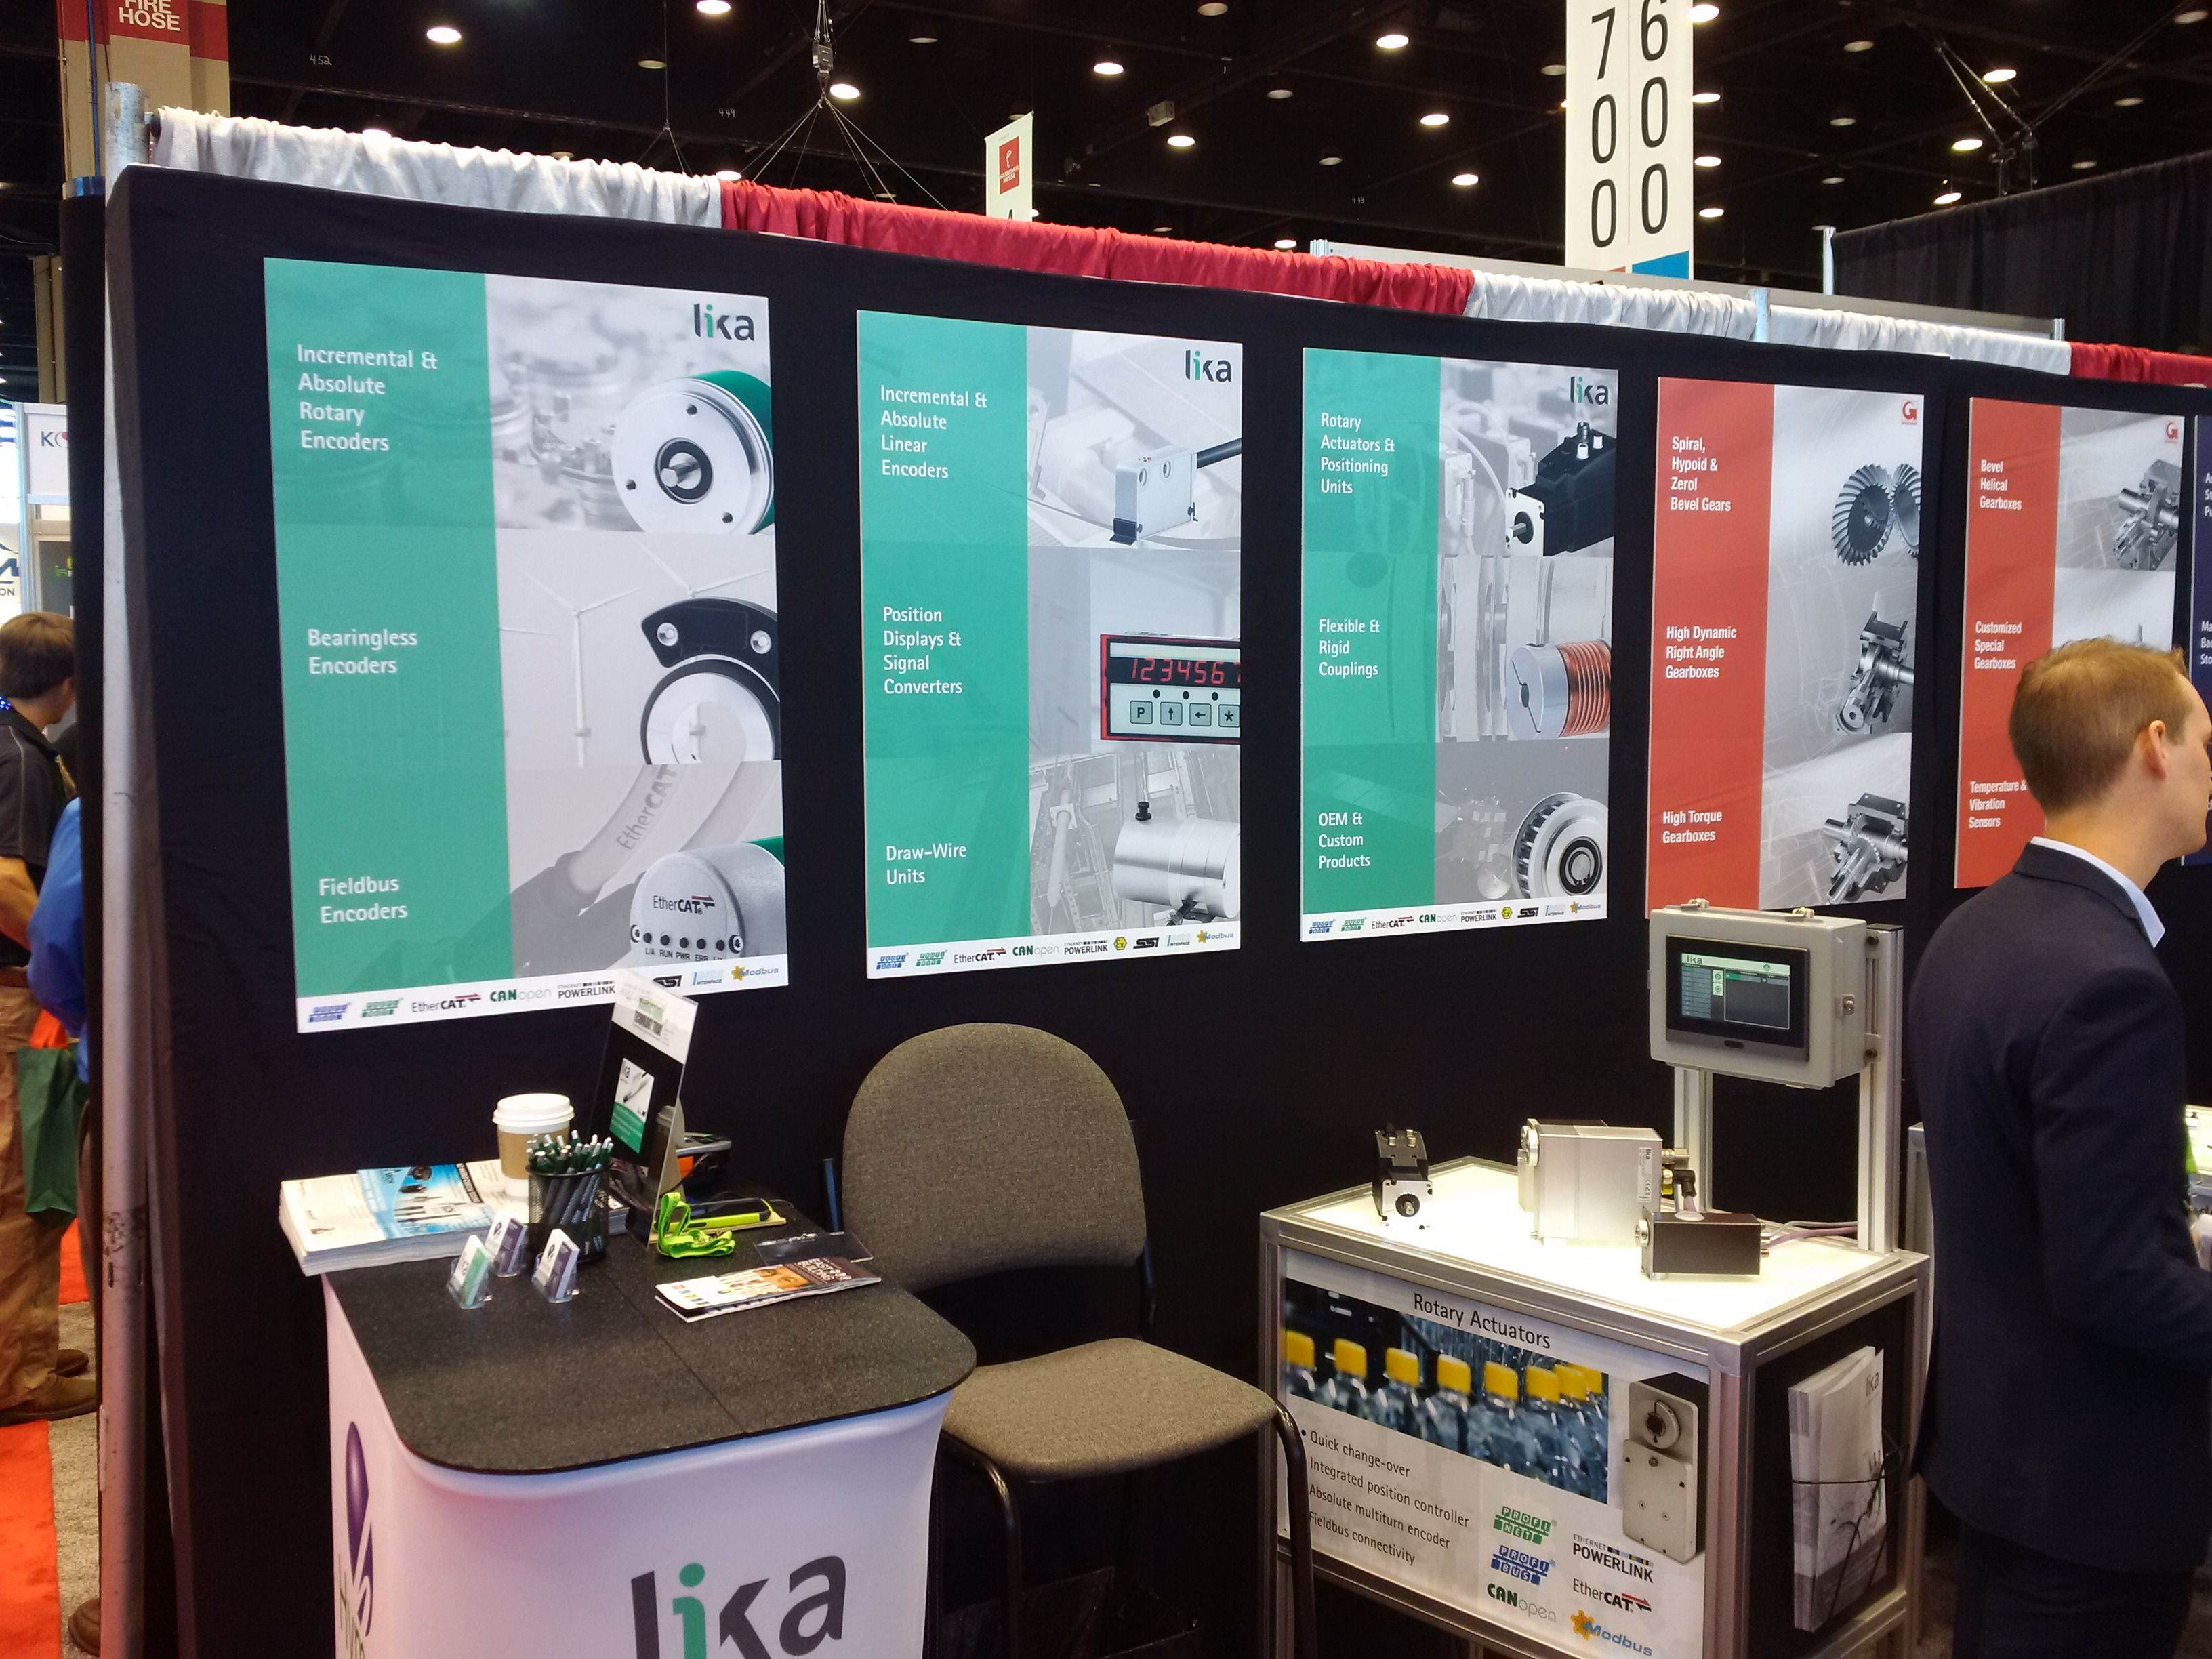 Lika's booth E-4354 at #IMTS in #Chicago. Discover the range of rotary #actuators + LDT10 #HMI touch panel for quick #changeover operations and positioning systems. Photo from Day 1